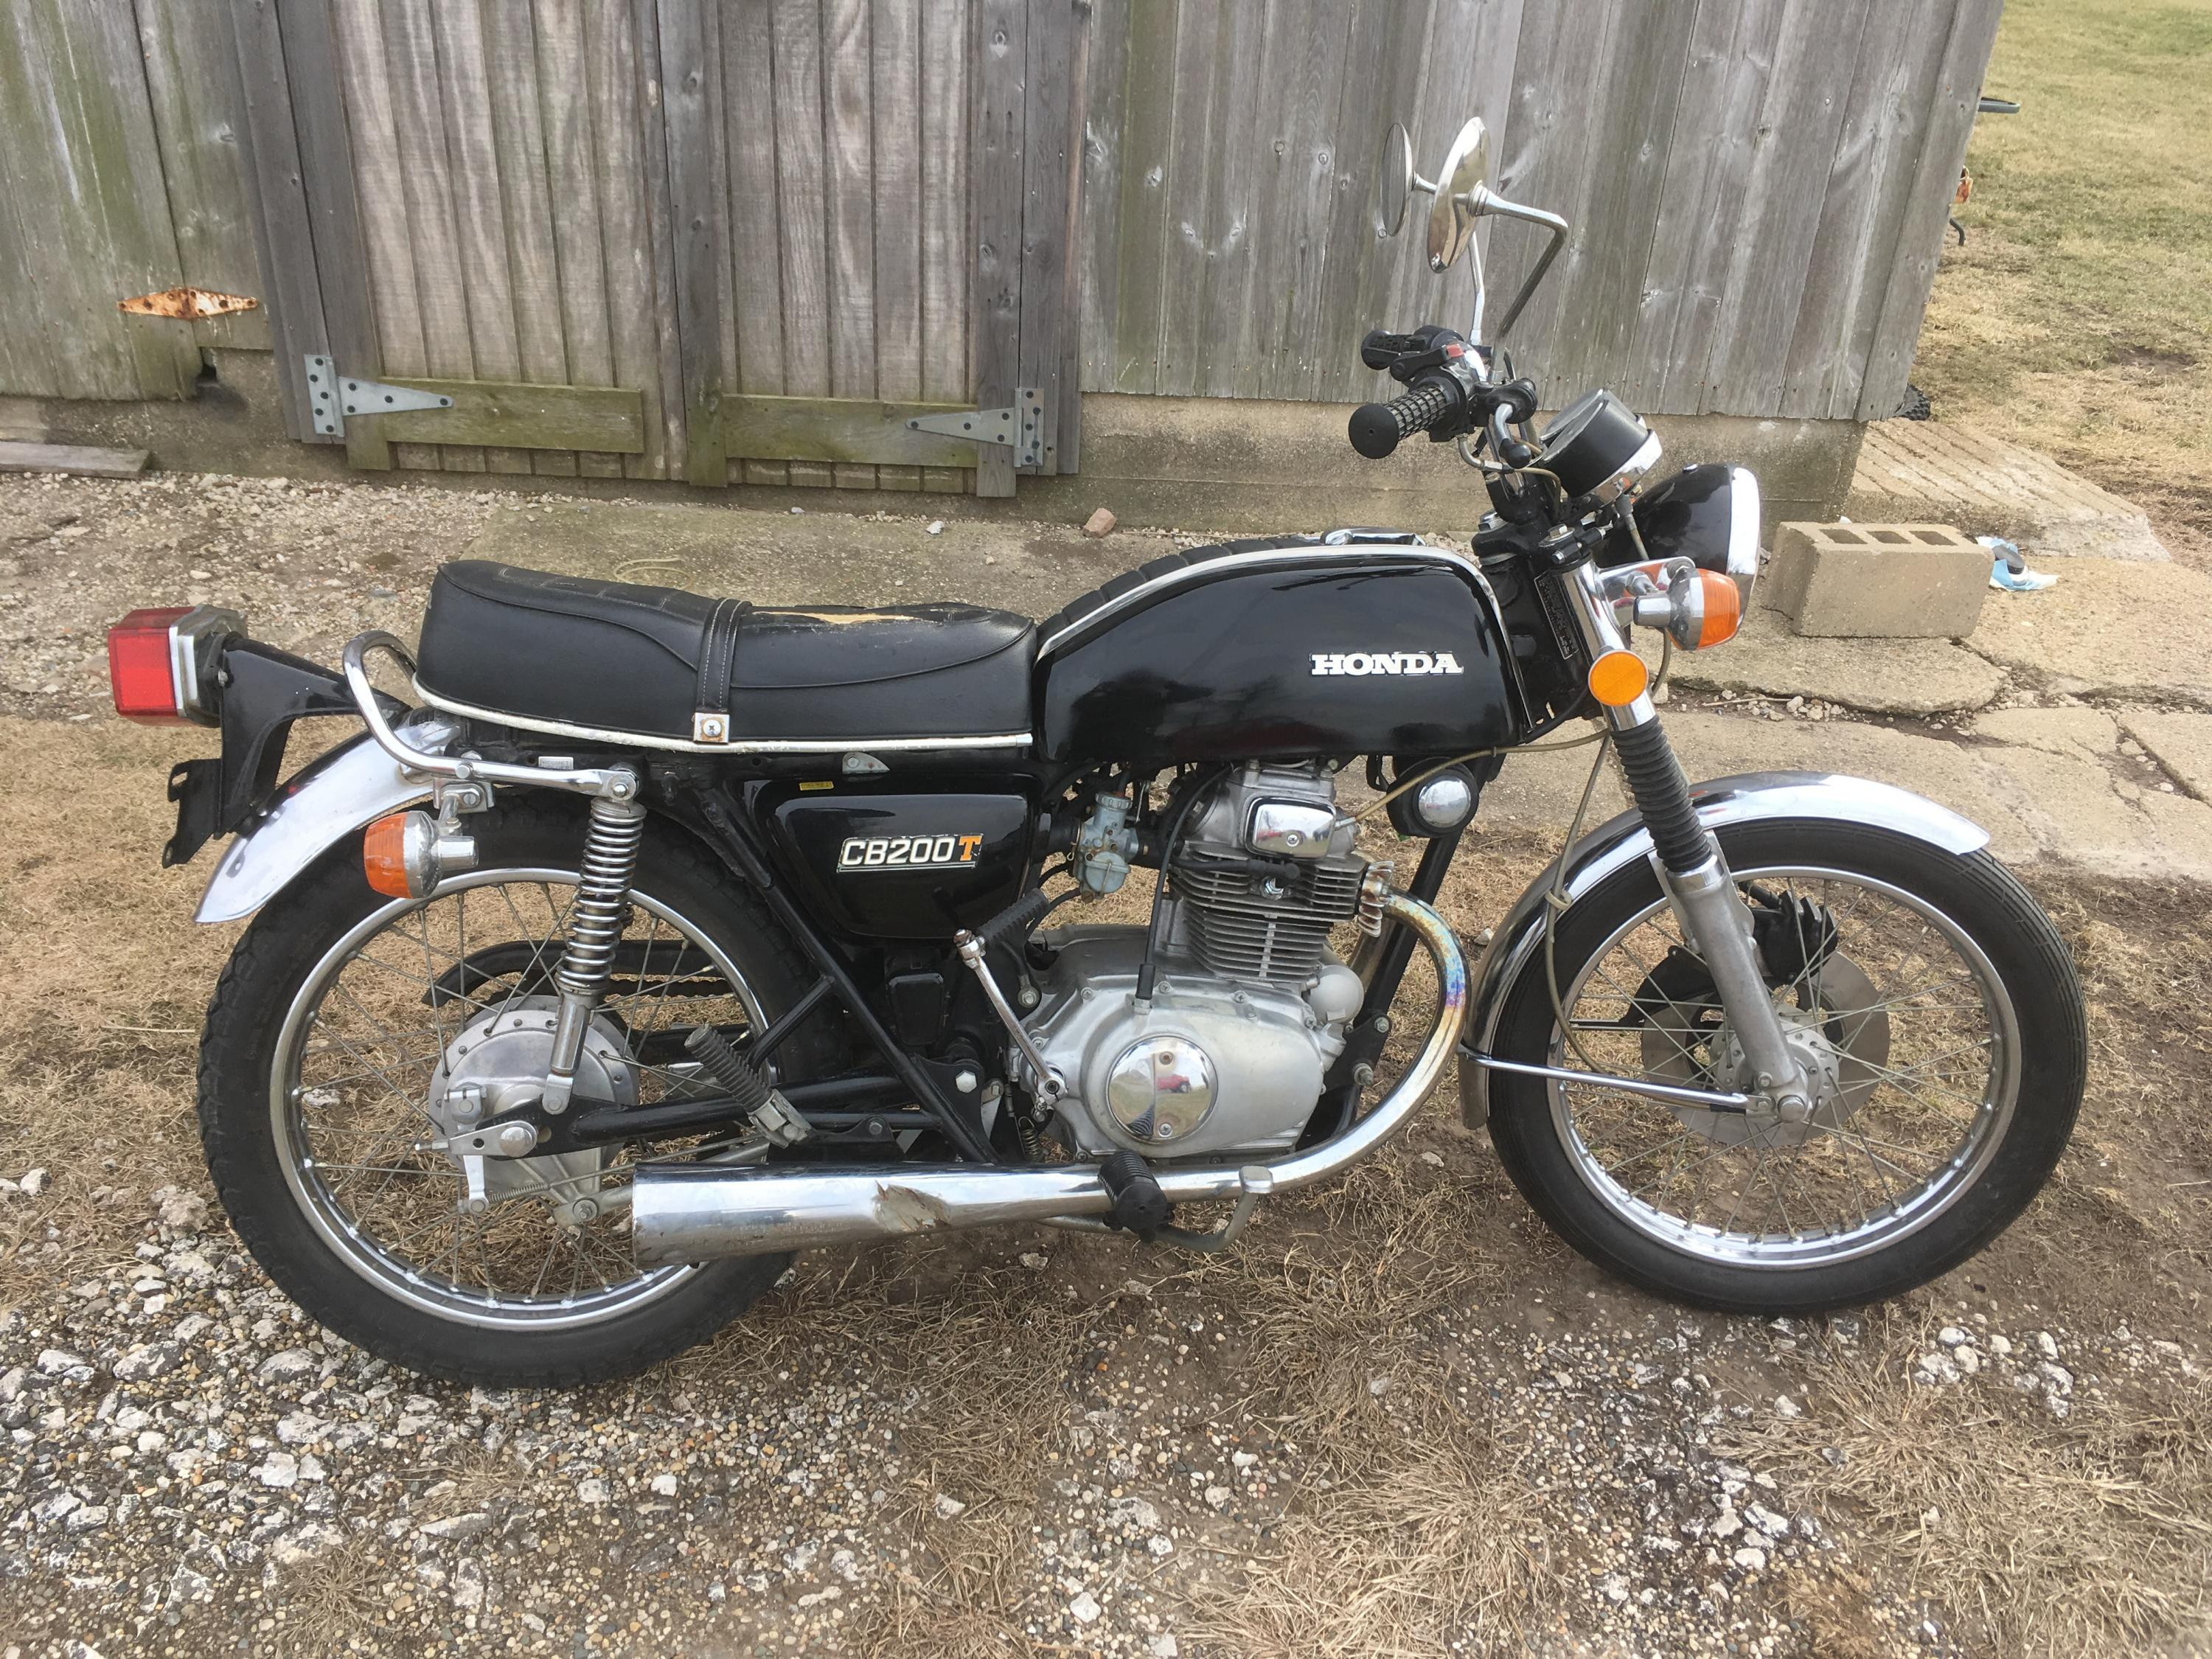 Honda Of Champaign >> '75 CB200 in central IL. Very nice condition, ready to ride.